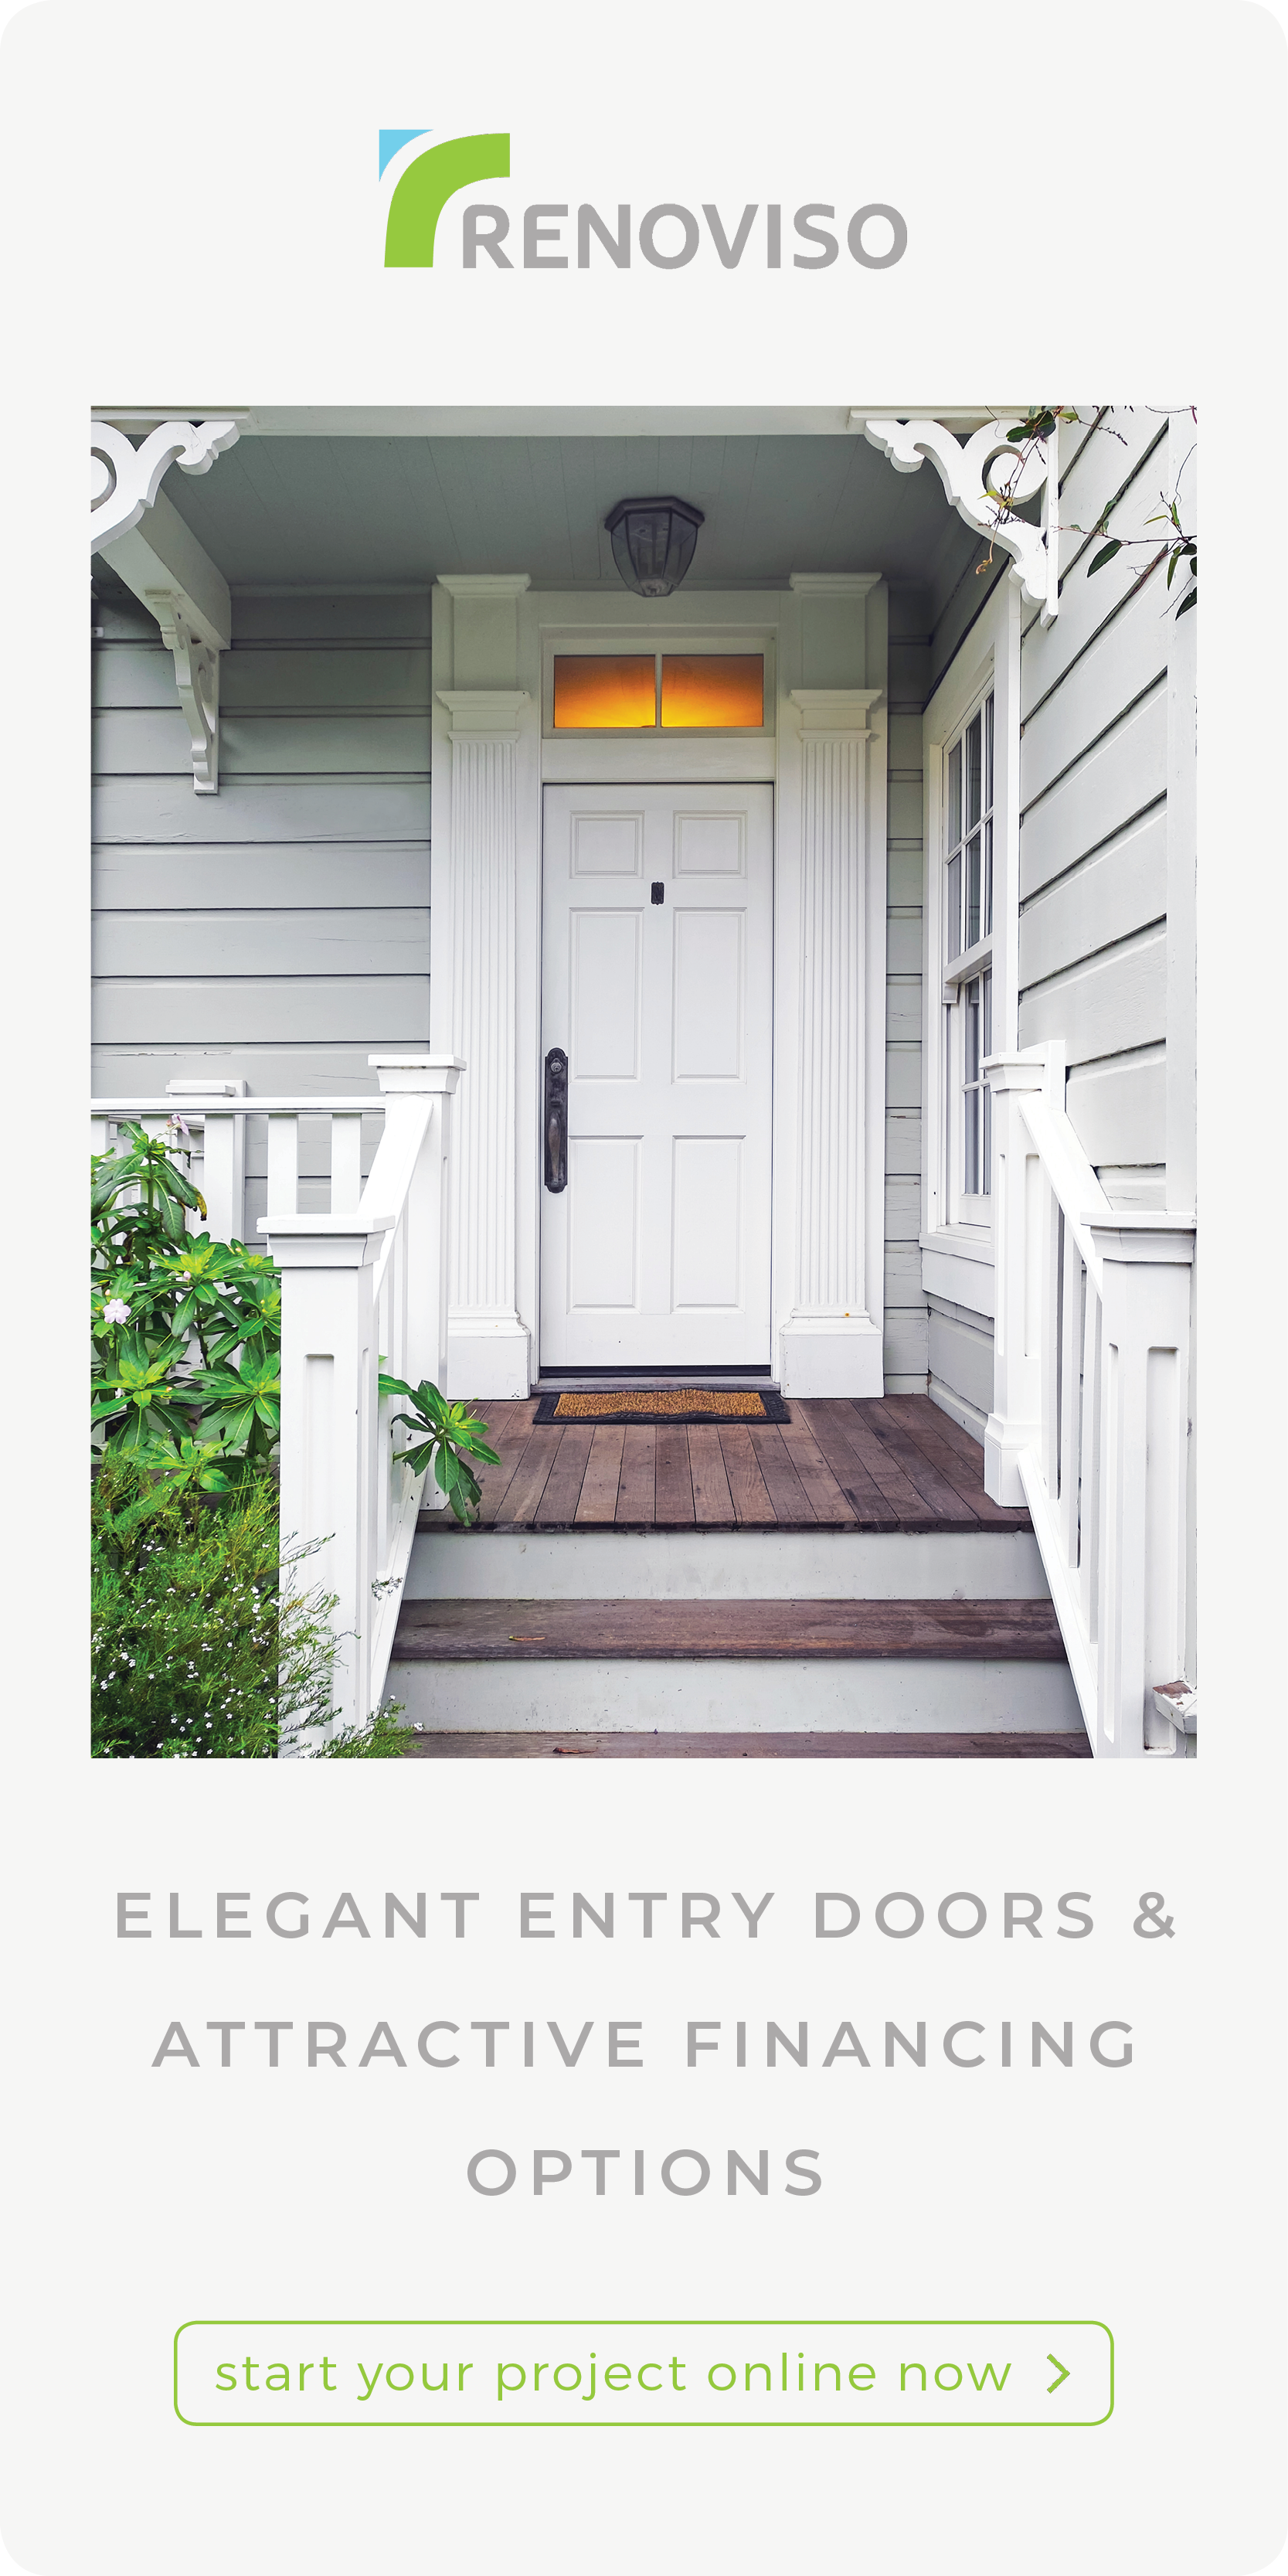 Home Improvement Improved Our Easy To Use Site Allows Homeowners To See Their Exact Entry Door Project Price Entry Doors Farm Style House Custom Entry Doors